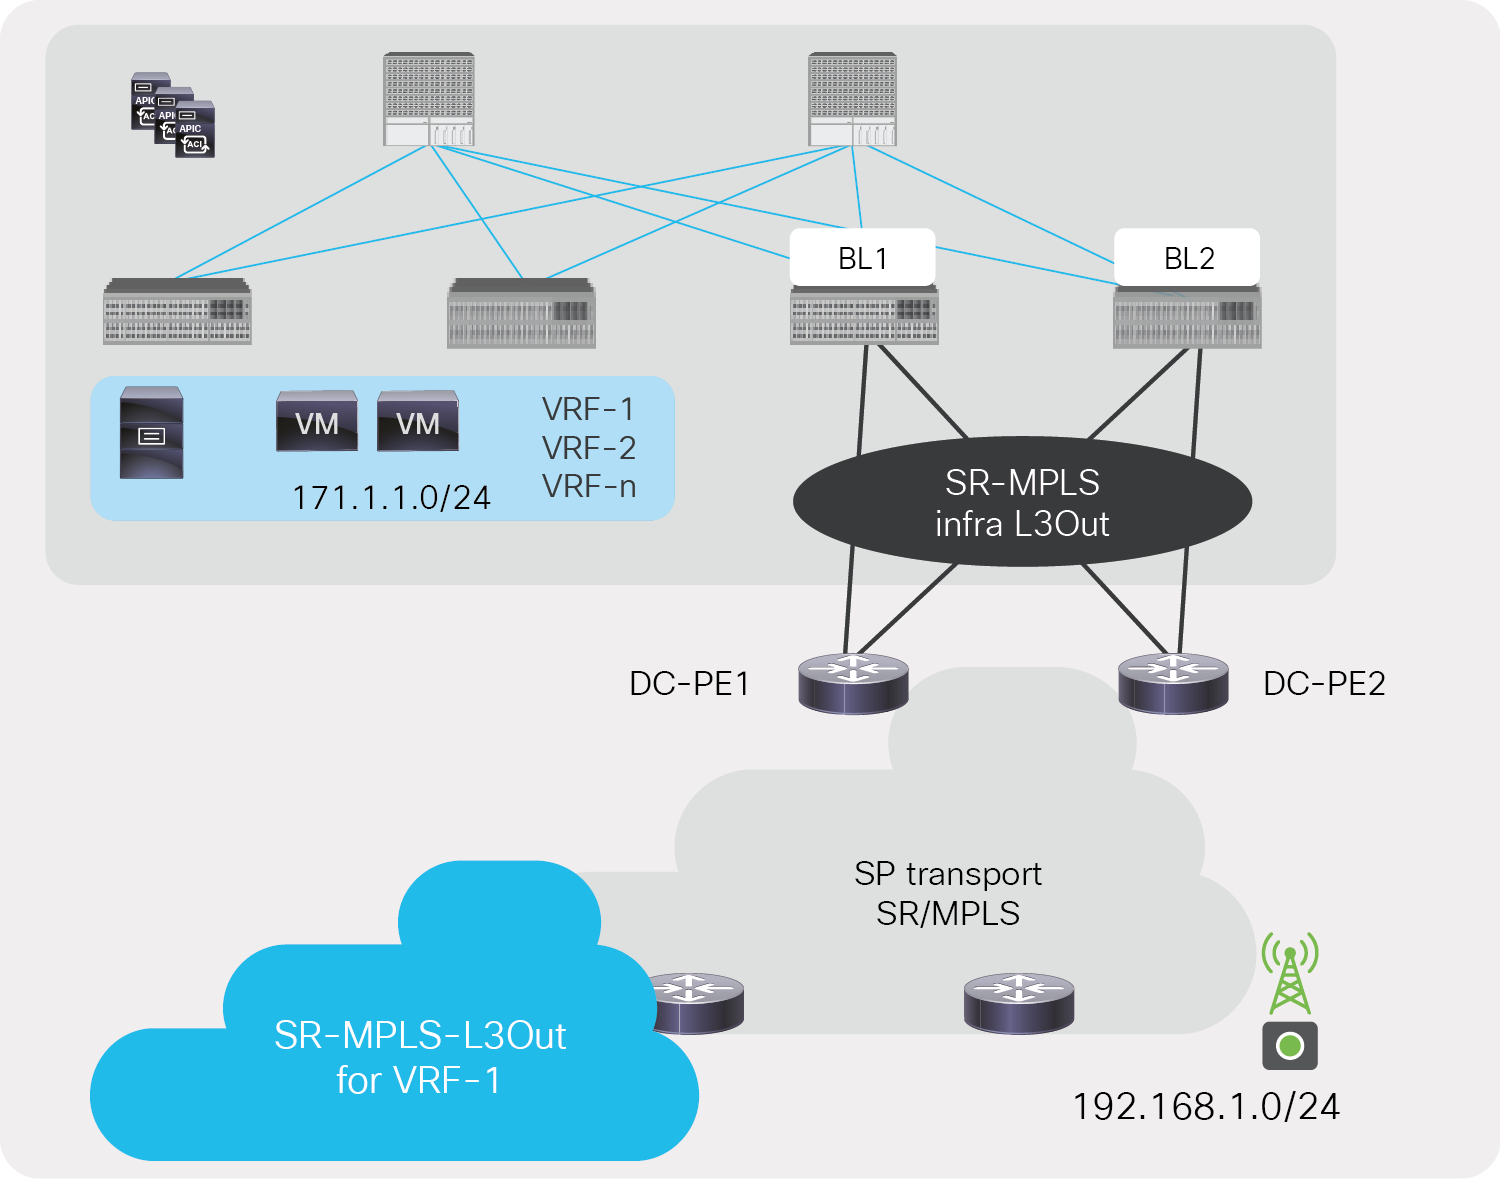 EPG/BD prefixes advertised through SR-MPLS VRF L3Out